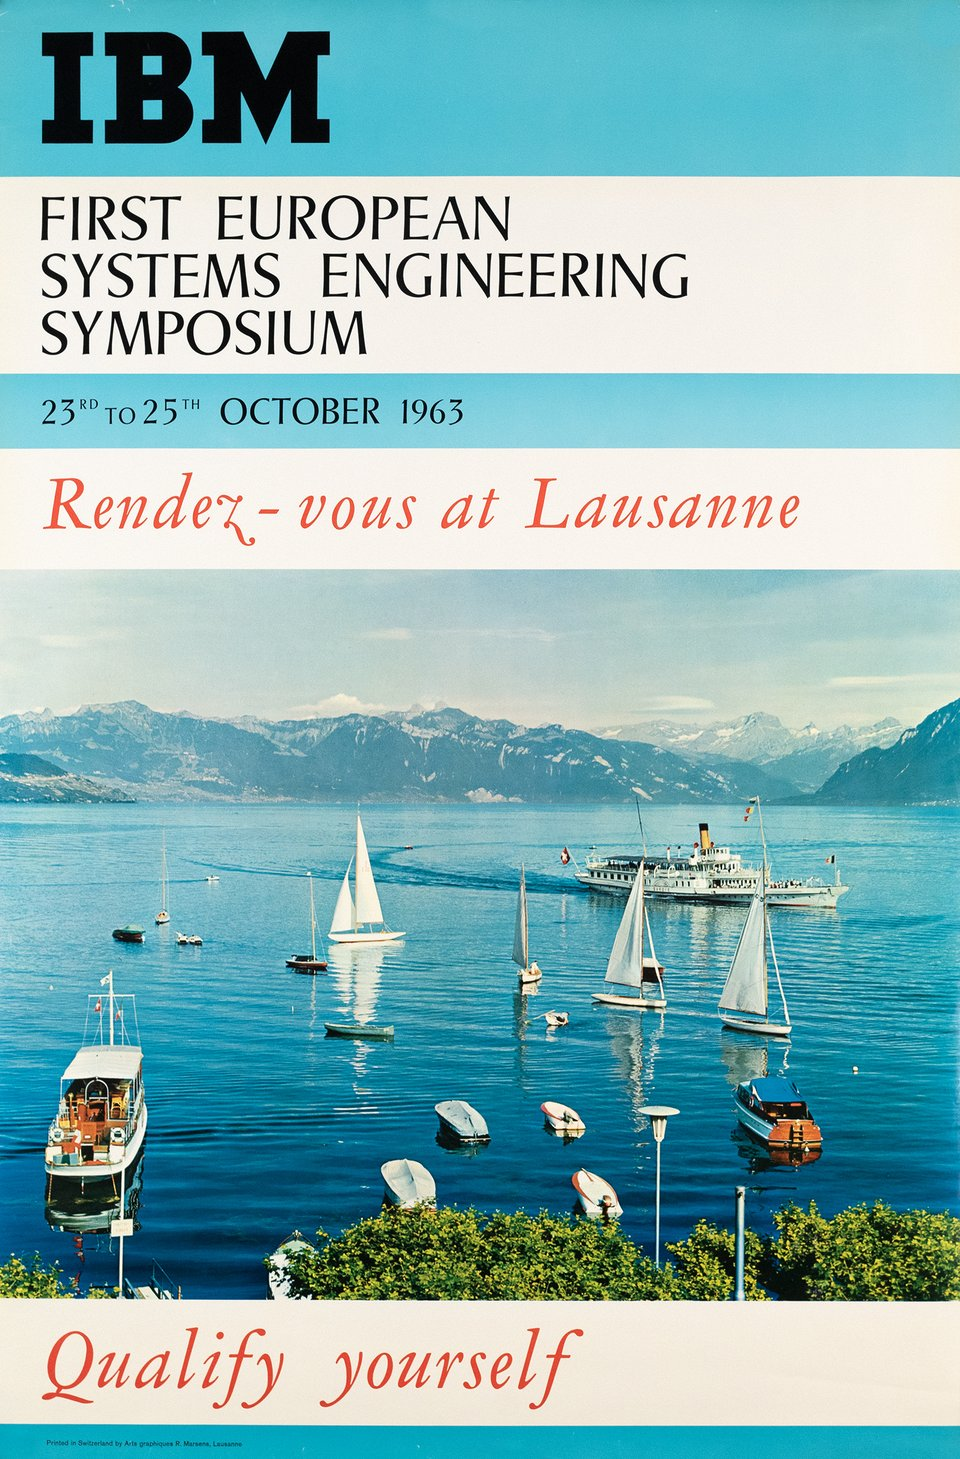 IBM First European Systems Engineering Symposium, Rendez-vous at Lausanne, Qualify yourself – Affiche ancienne – ANONYME – 1963